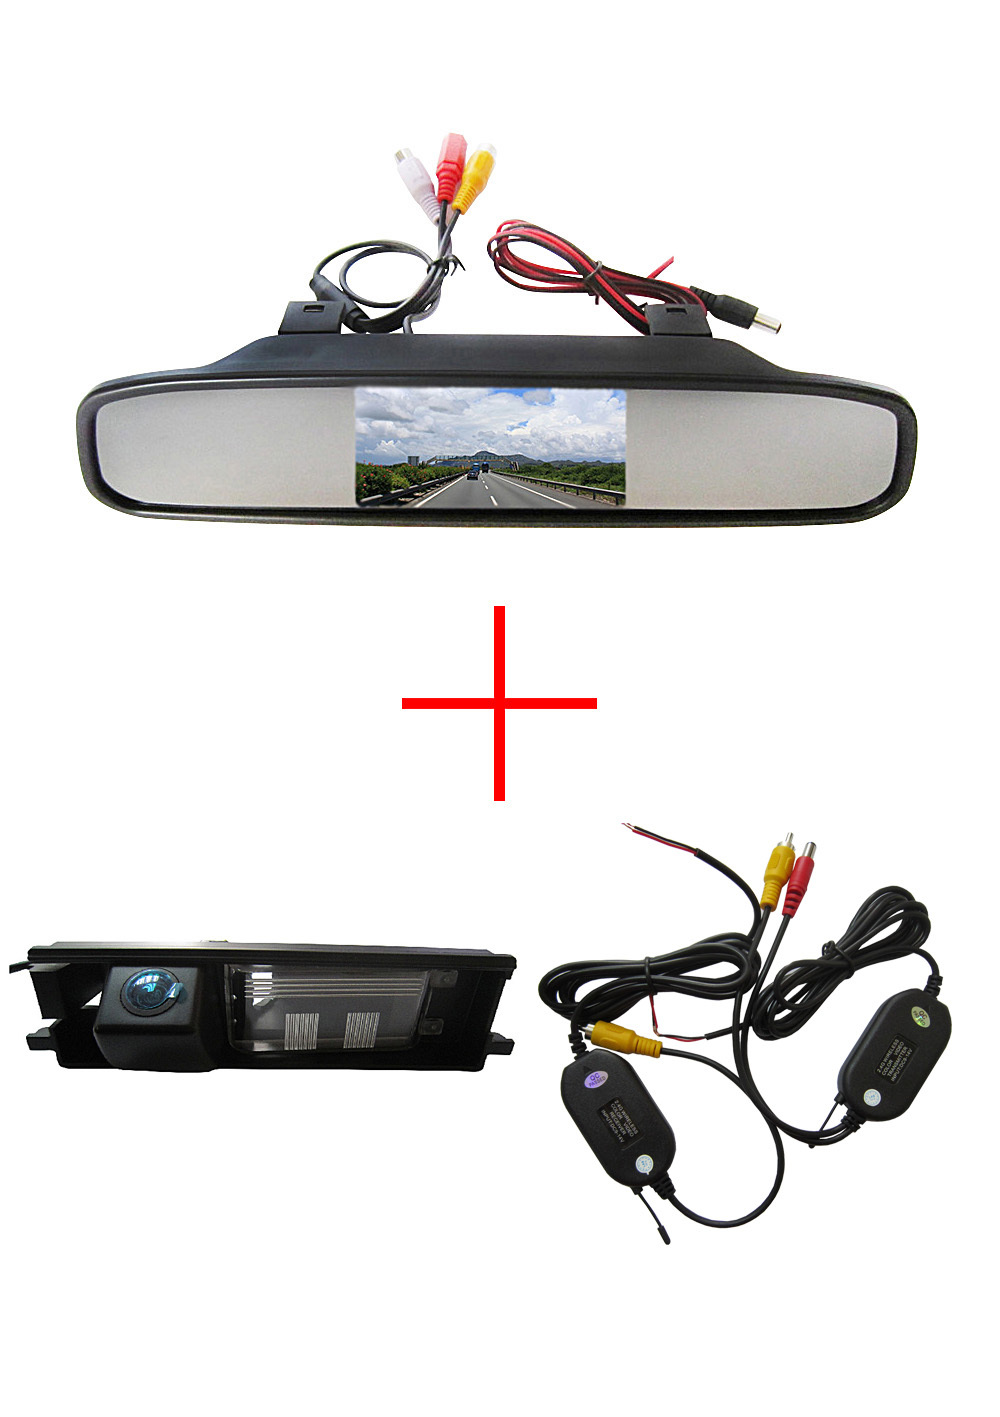 Wireless Color CCD Car Chip Rear View Camera for Toyota RAV4 RAV-4  + 4.3 Inch rearview Mirror Monitor wireless color ccd chip car rear view camera for kia sorento sportage 4 3 inch foldable lcd tft monitor